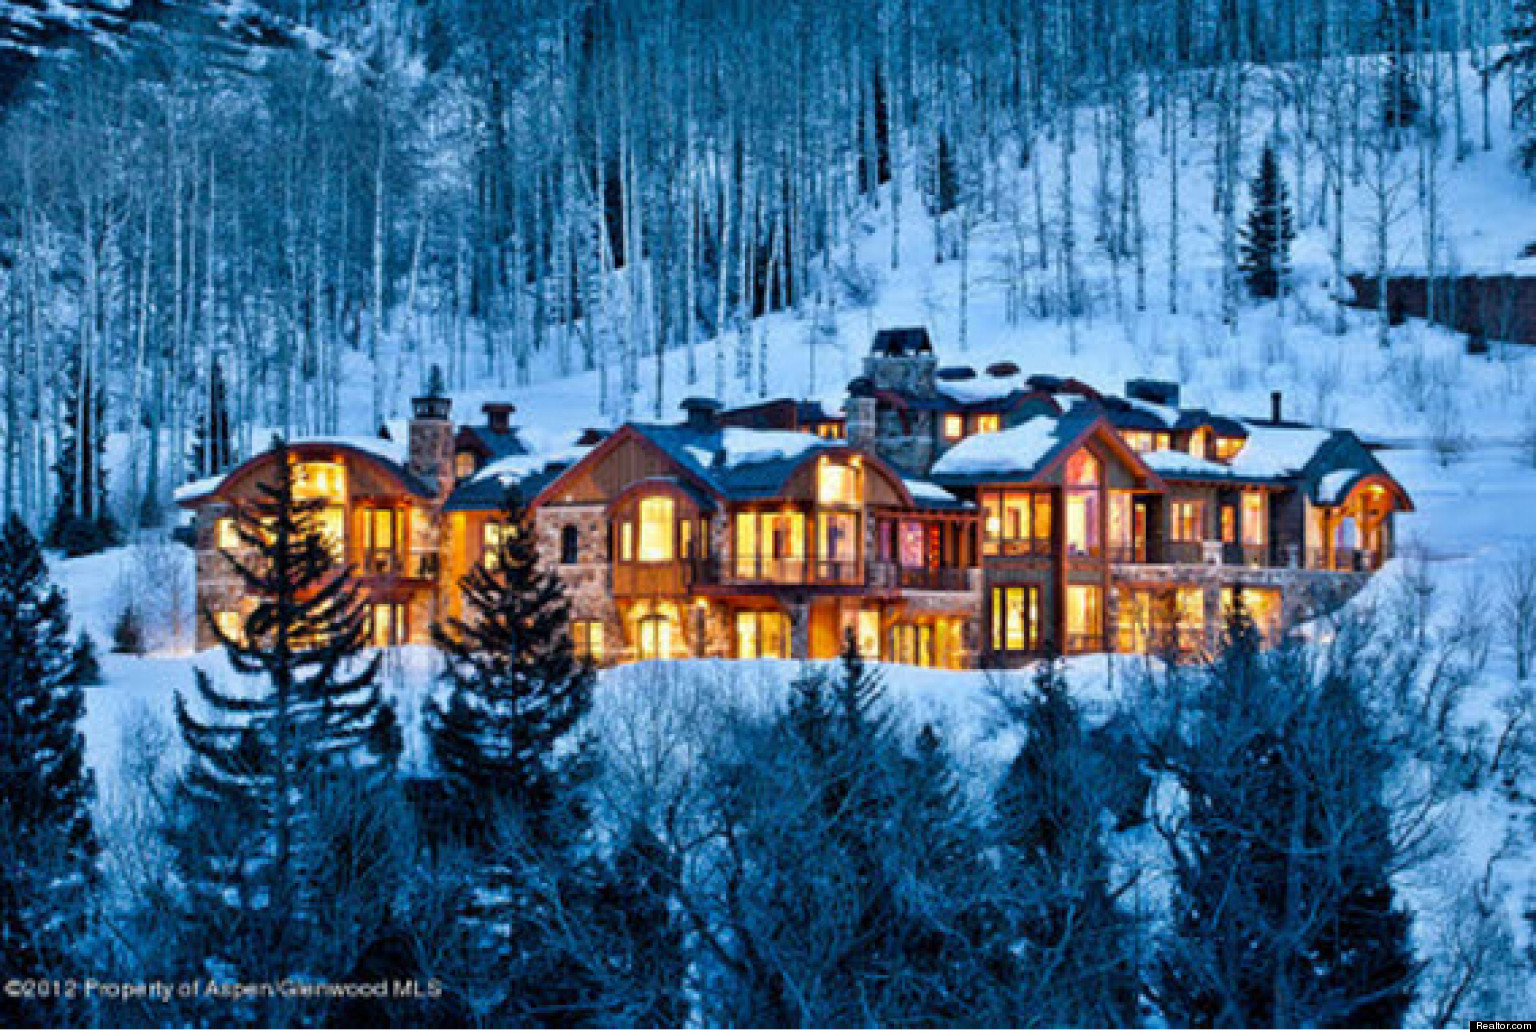 Top 10 most expensive homes in colorado in 2012 according for World top 10 home